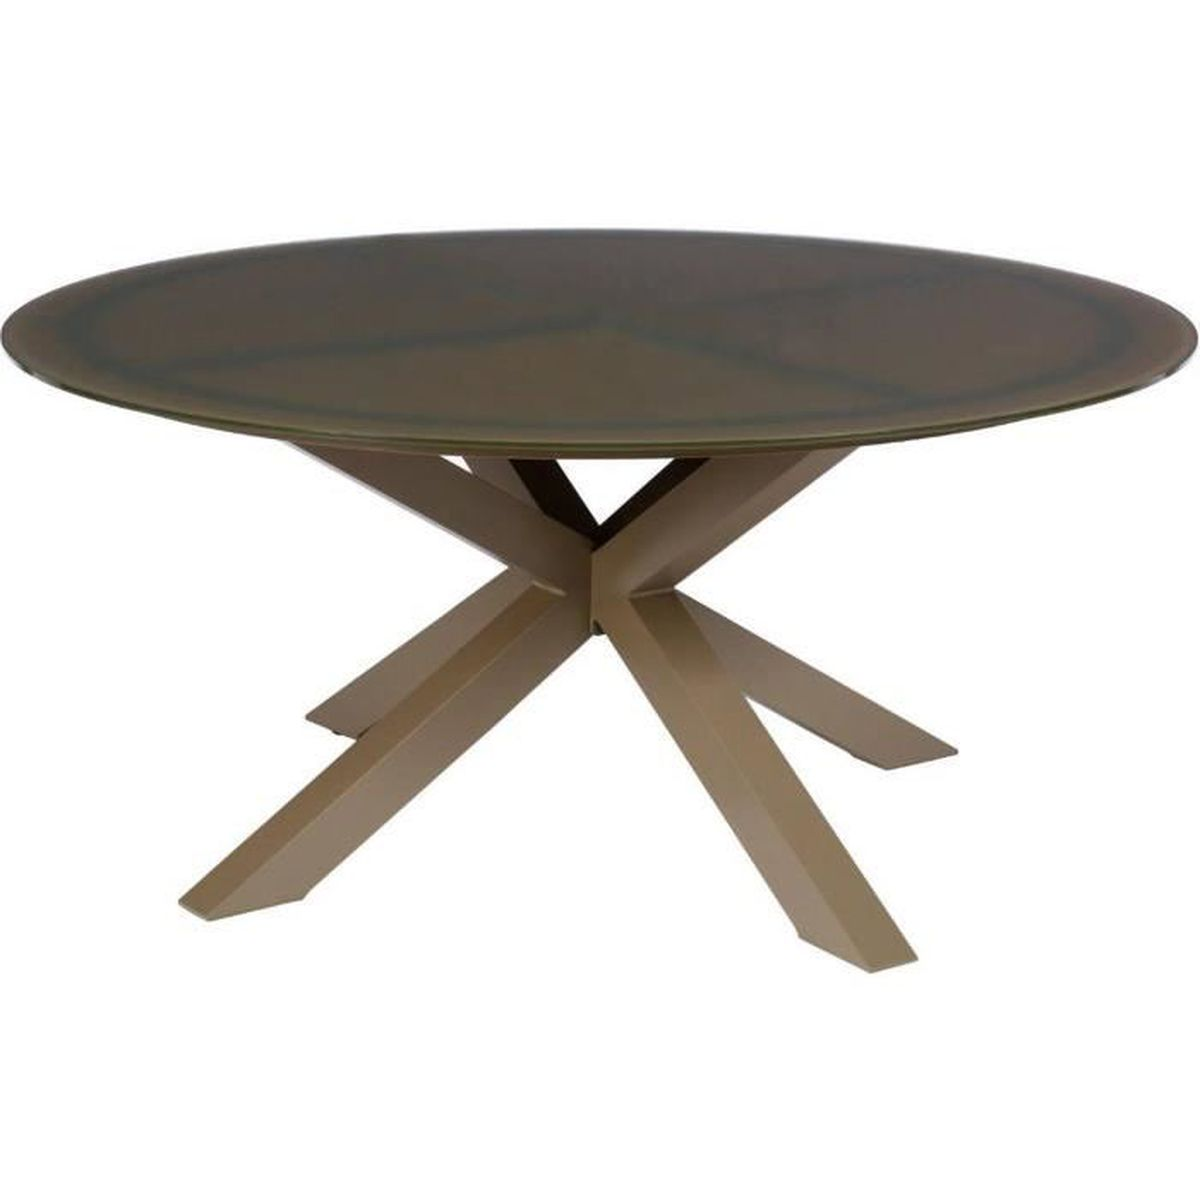 Emejing table ronde jardin solde photos amazing house for Vente table jardin